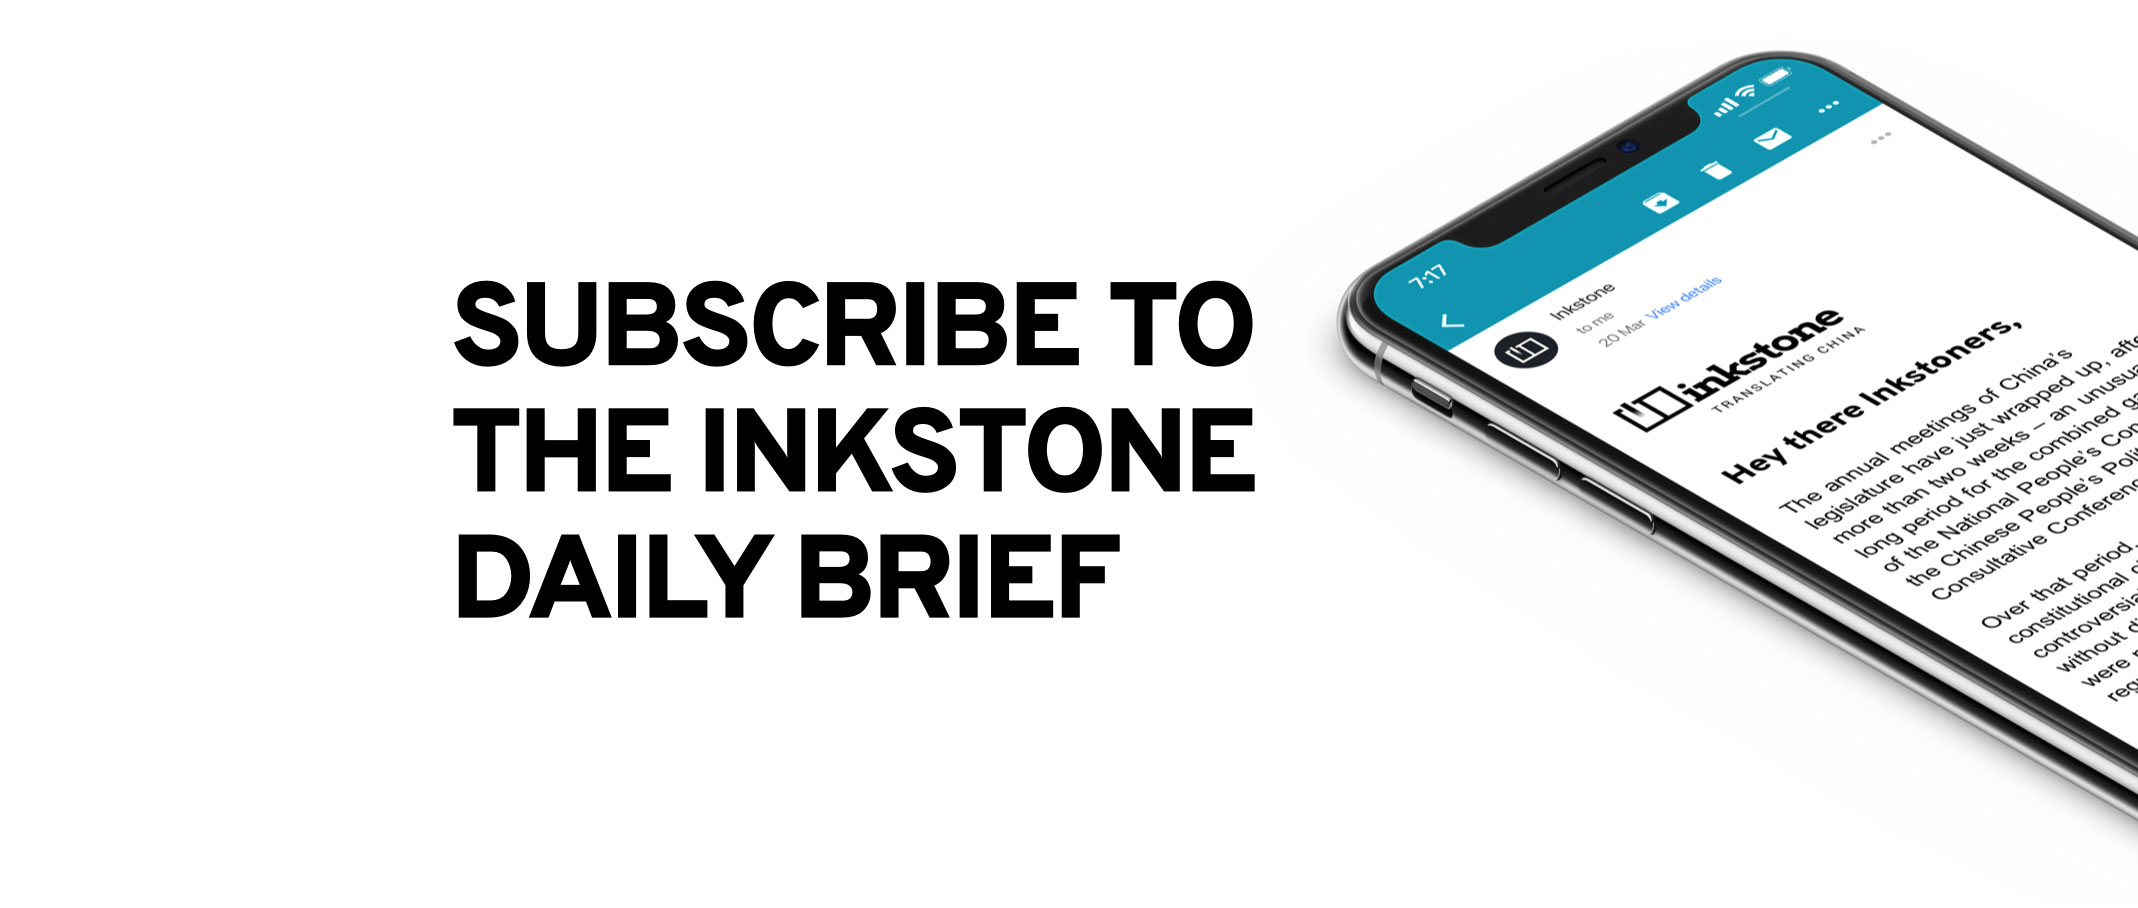 Subscribe to the Inkstone Daily Brief